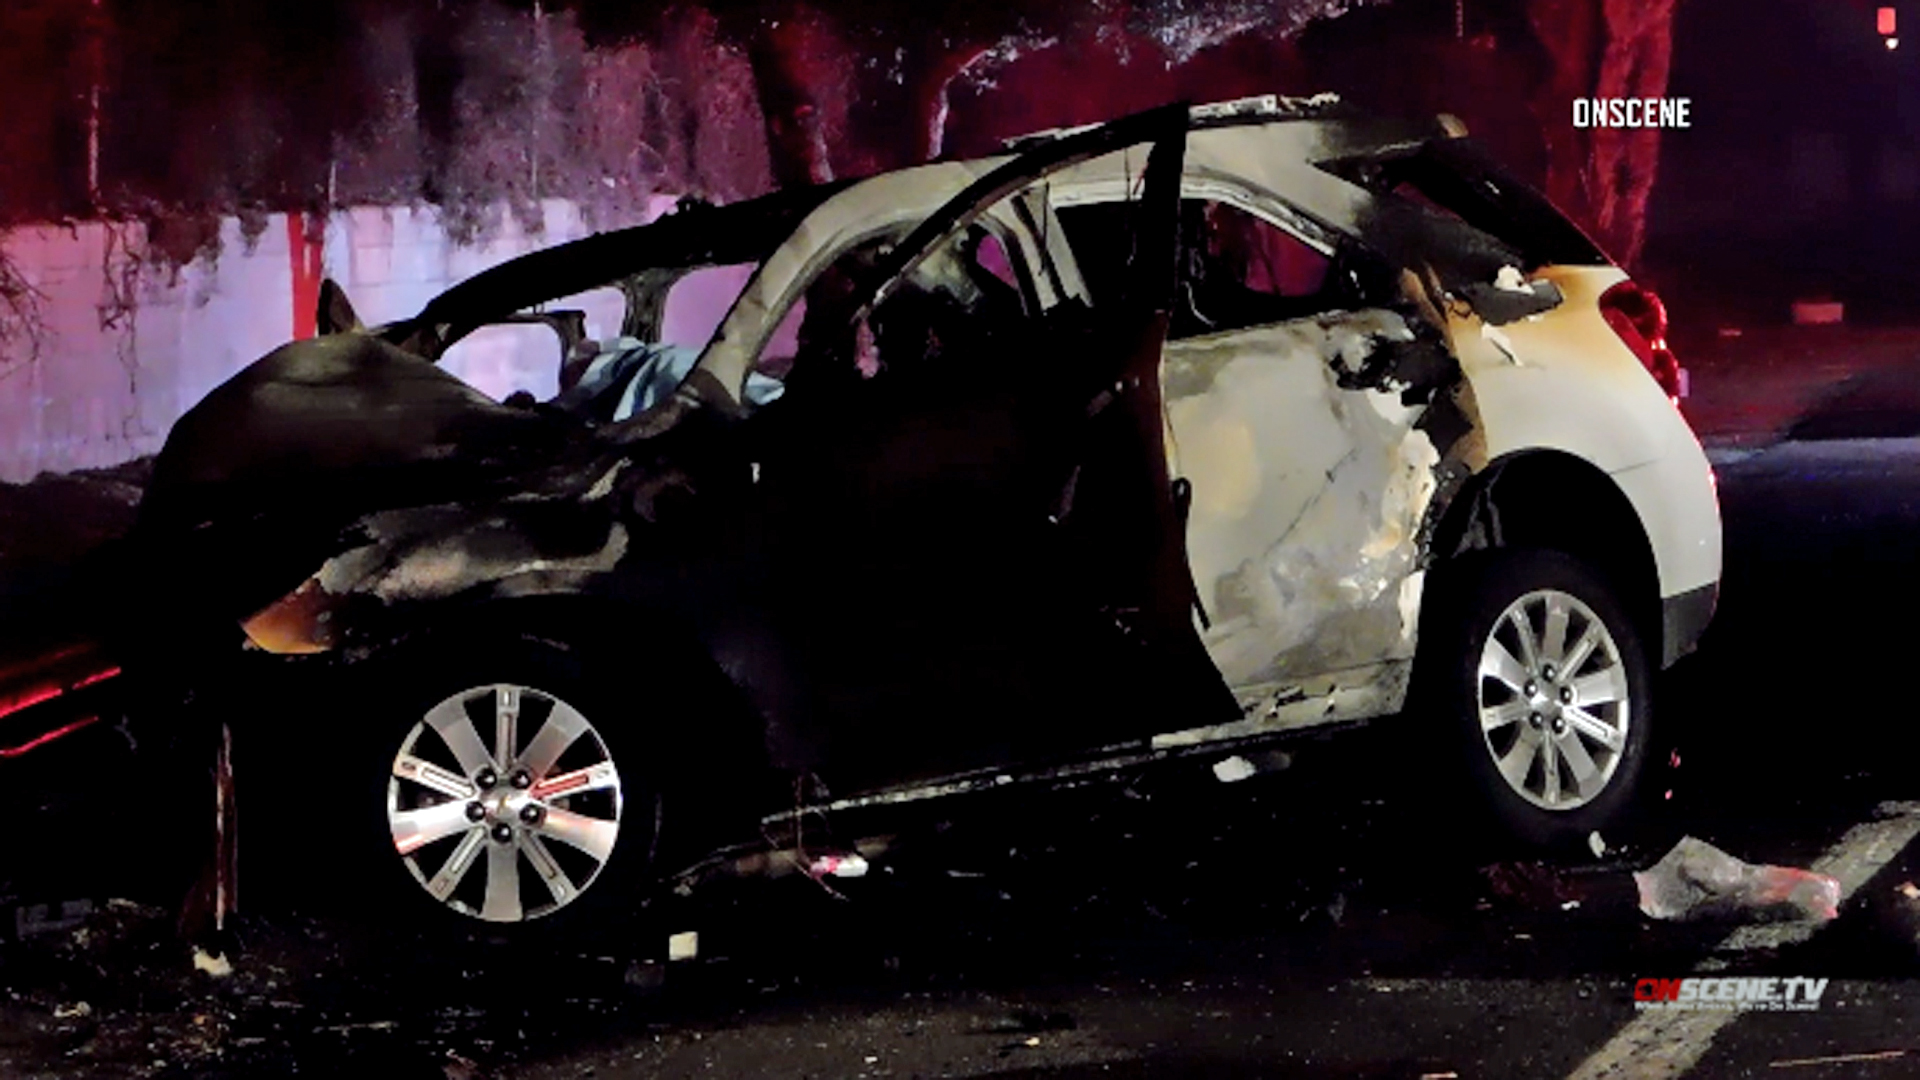 One person was killed in a crash on the 60 Freeway in Ontario on Sept. 26, 2018. (Credit: OnScene.TV)